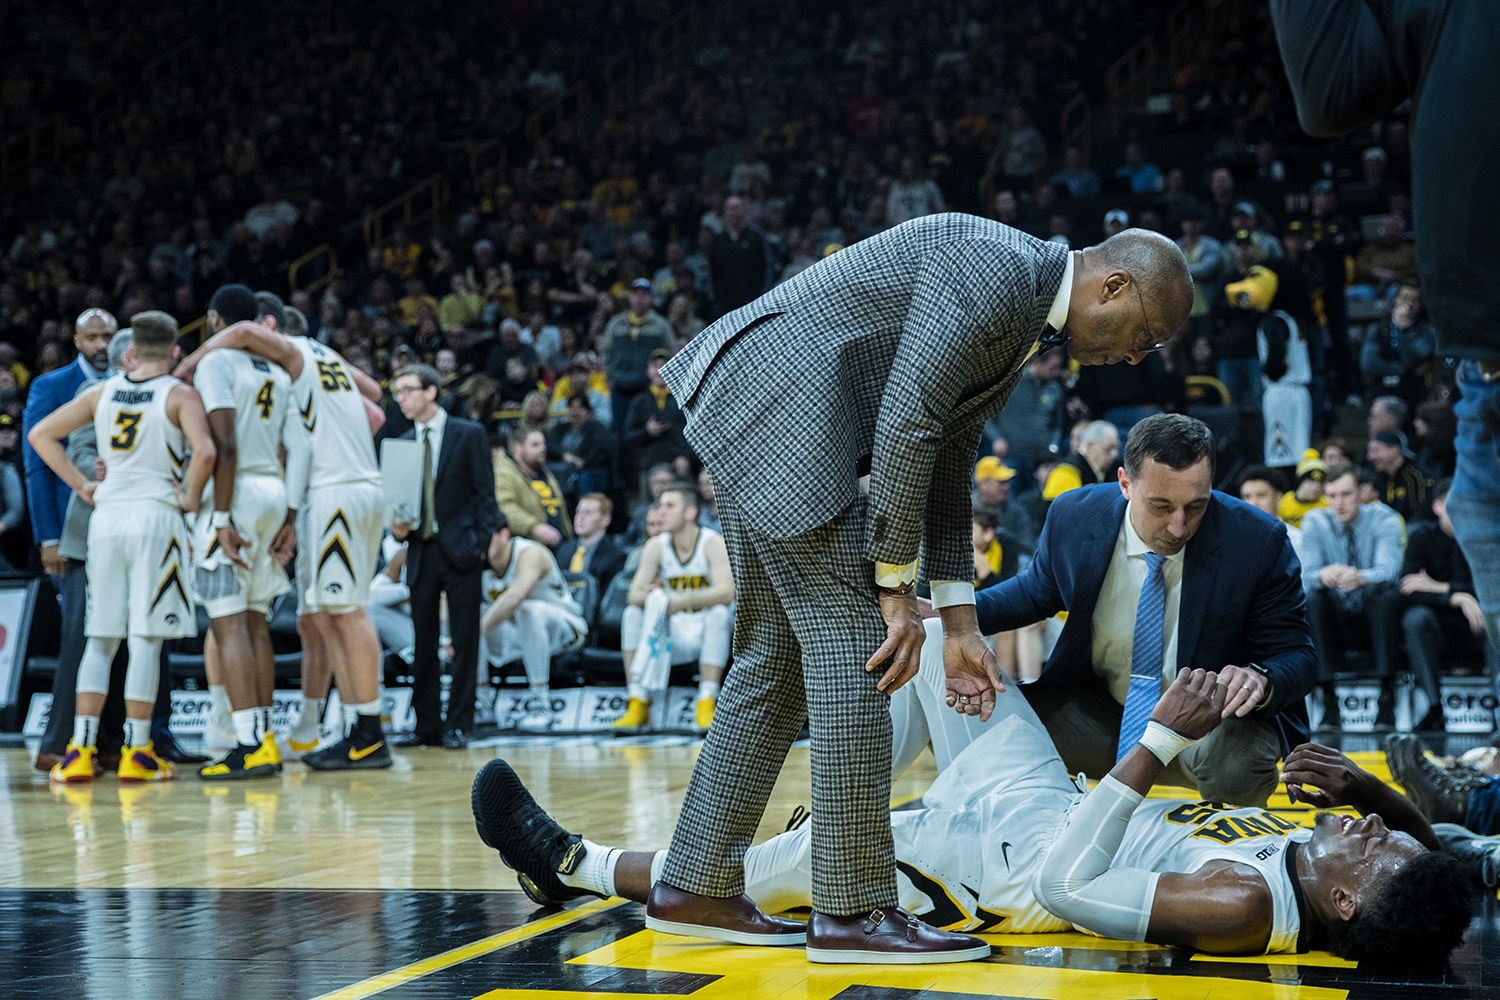 Trainers tend to Iowa forward Tyler Cook during a men's basketball matchup between Ohio State and Iowa at Carver-Hawkeye Arena on Saturday, January 12, 2019. The Hawkeyes defeated the Buckeyes, 72-62.